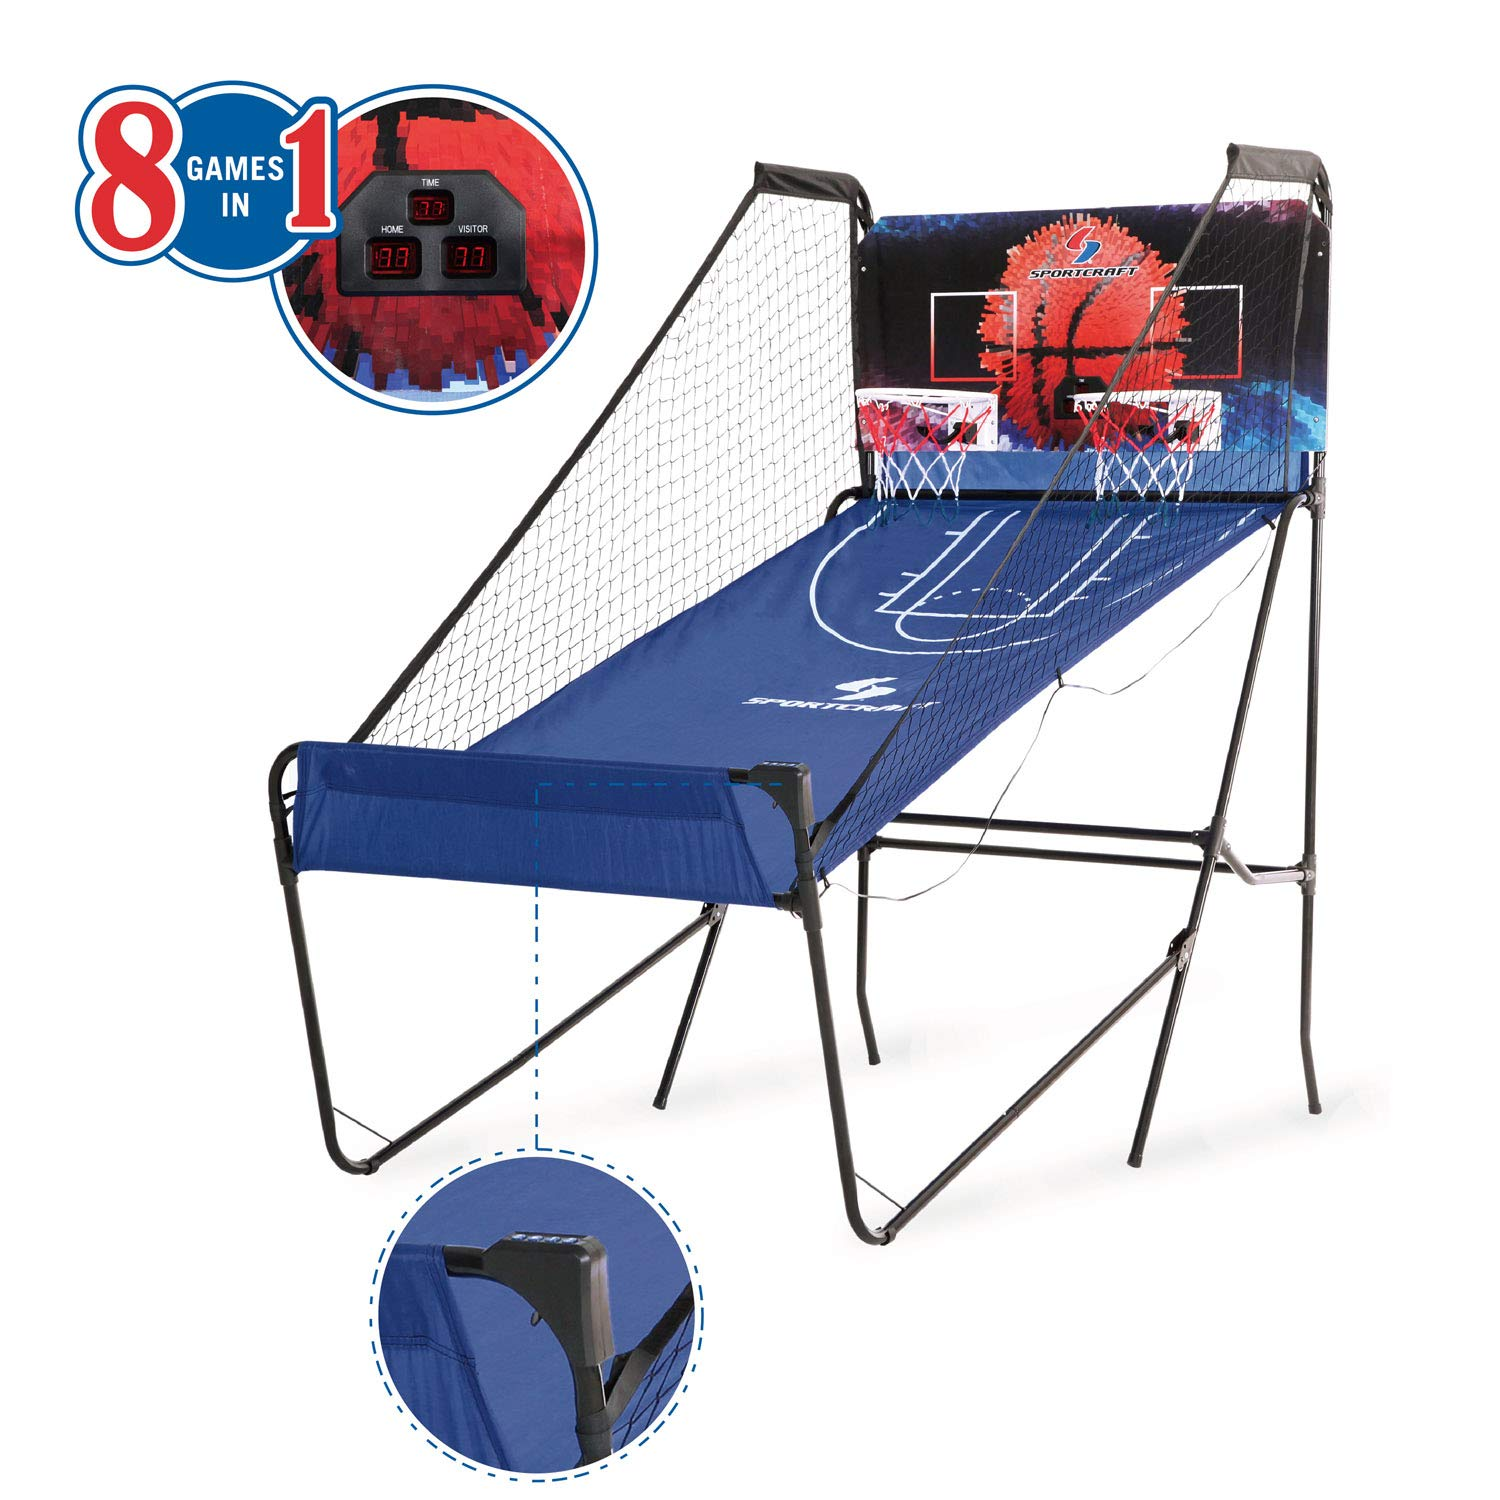 Sportcraft 10 Mins Setup/No Tools Required 2-Player Basketball Arcade Game w/ 8 Game Options by Sportcraft